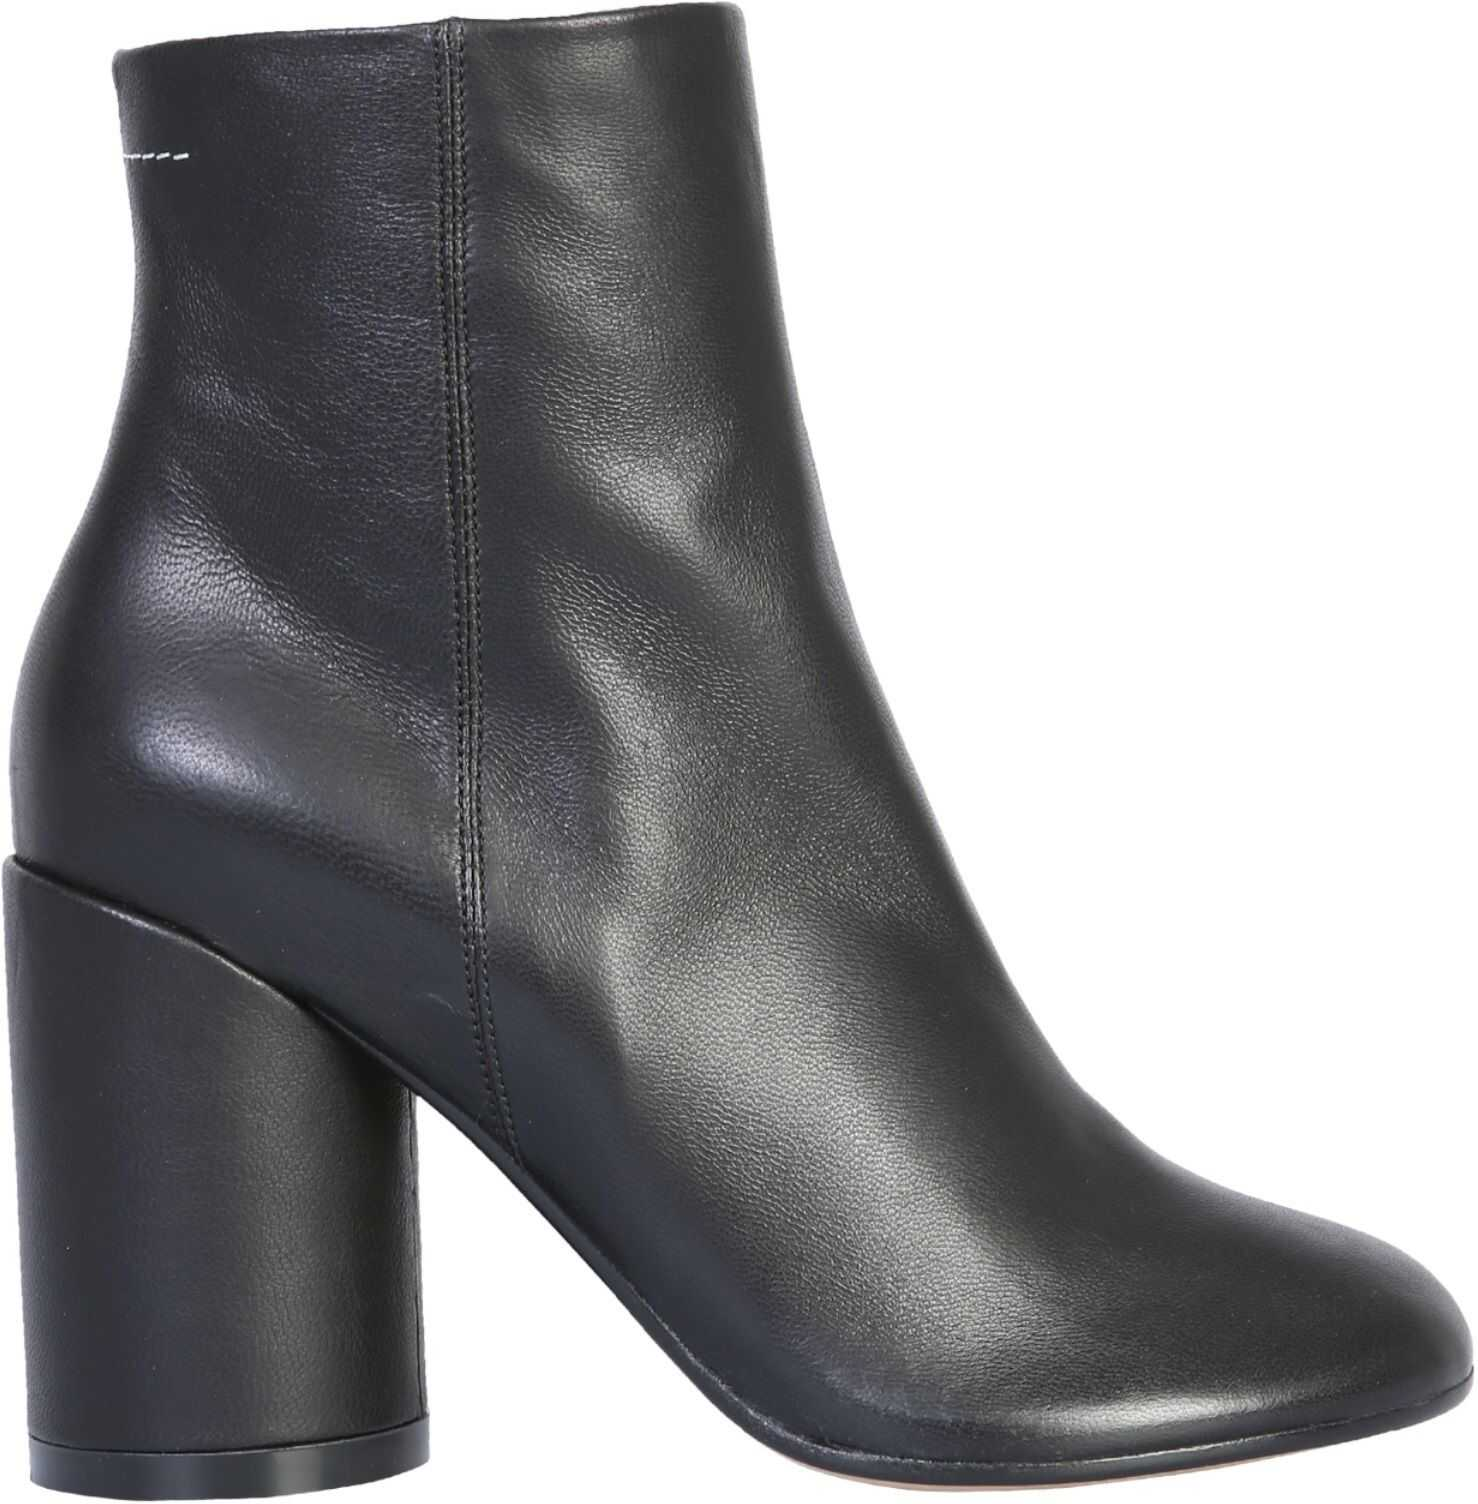 MM6 Maison Margiela Ankle Boot With